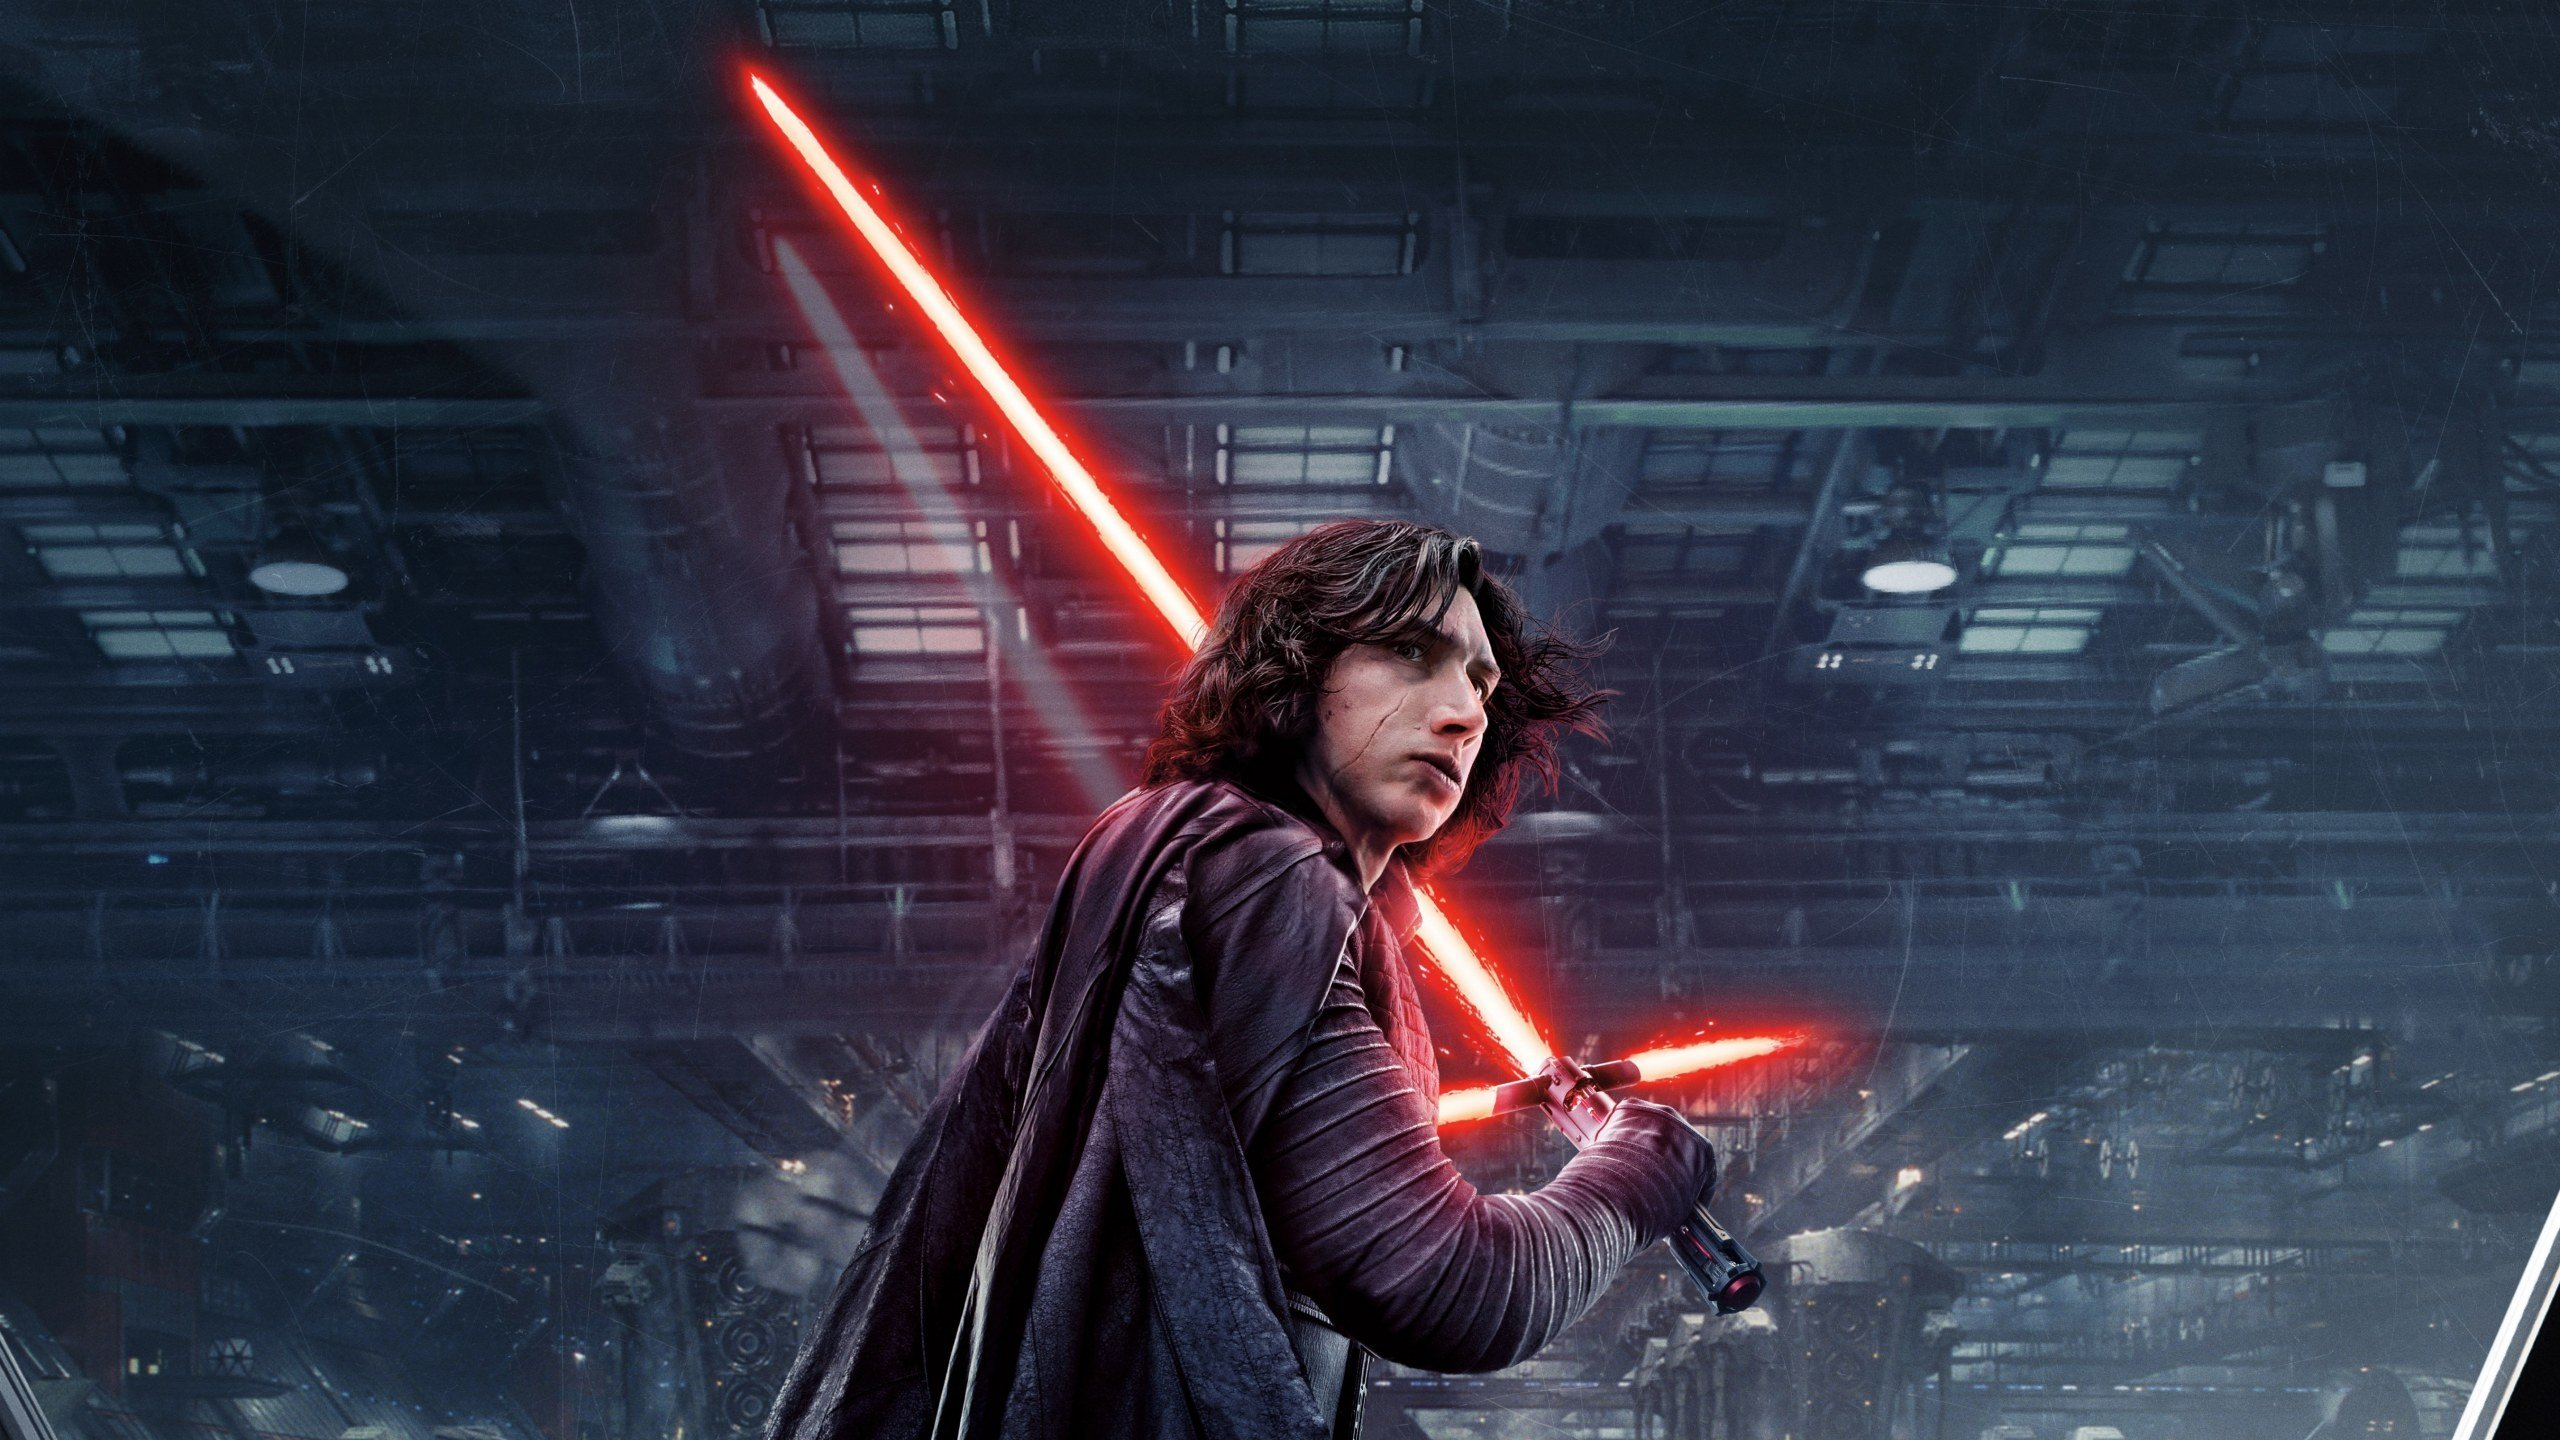 Kylo 4k Wallpapers For Your Desktop Or Mobile Screen Free And Easy To Download